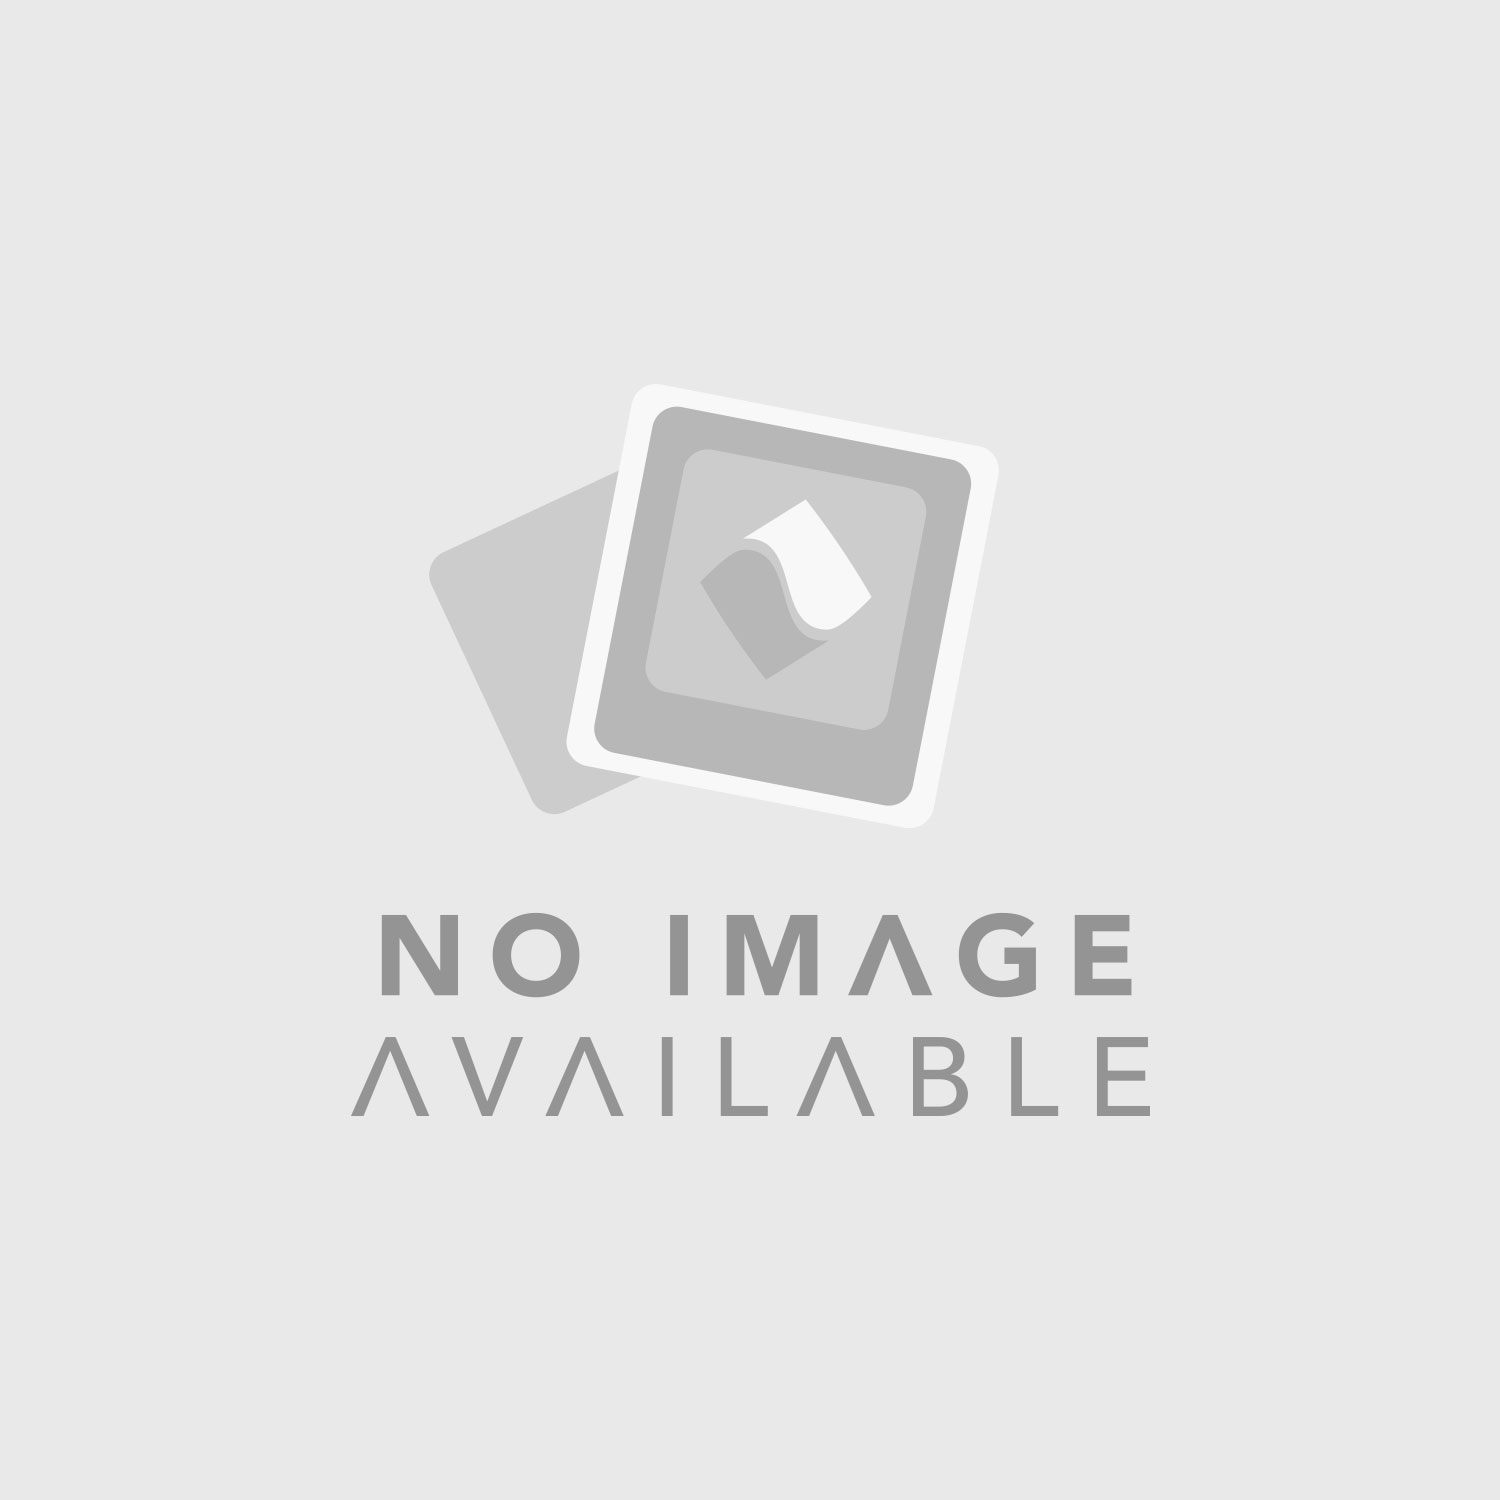 Waves Aphex Vintage Aural Exciter Audio Enhancement Plug-In (Download)